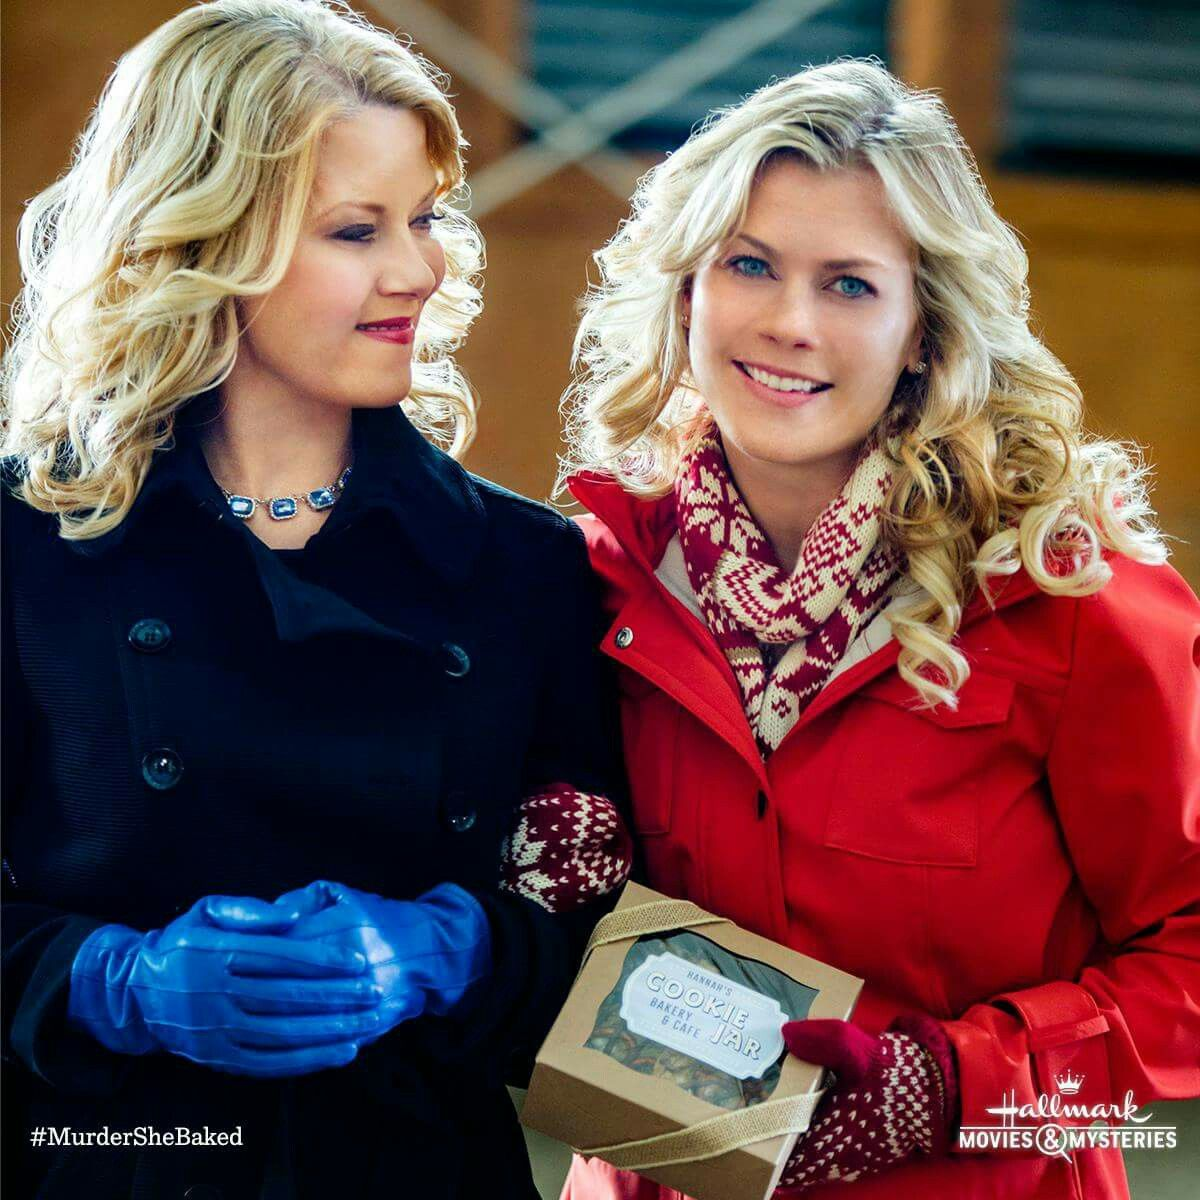 Pin on I love Hallmark Movies